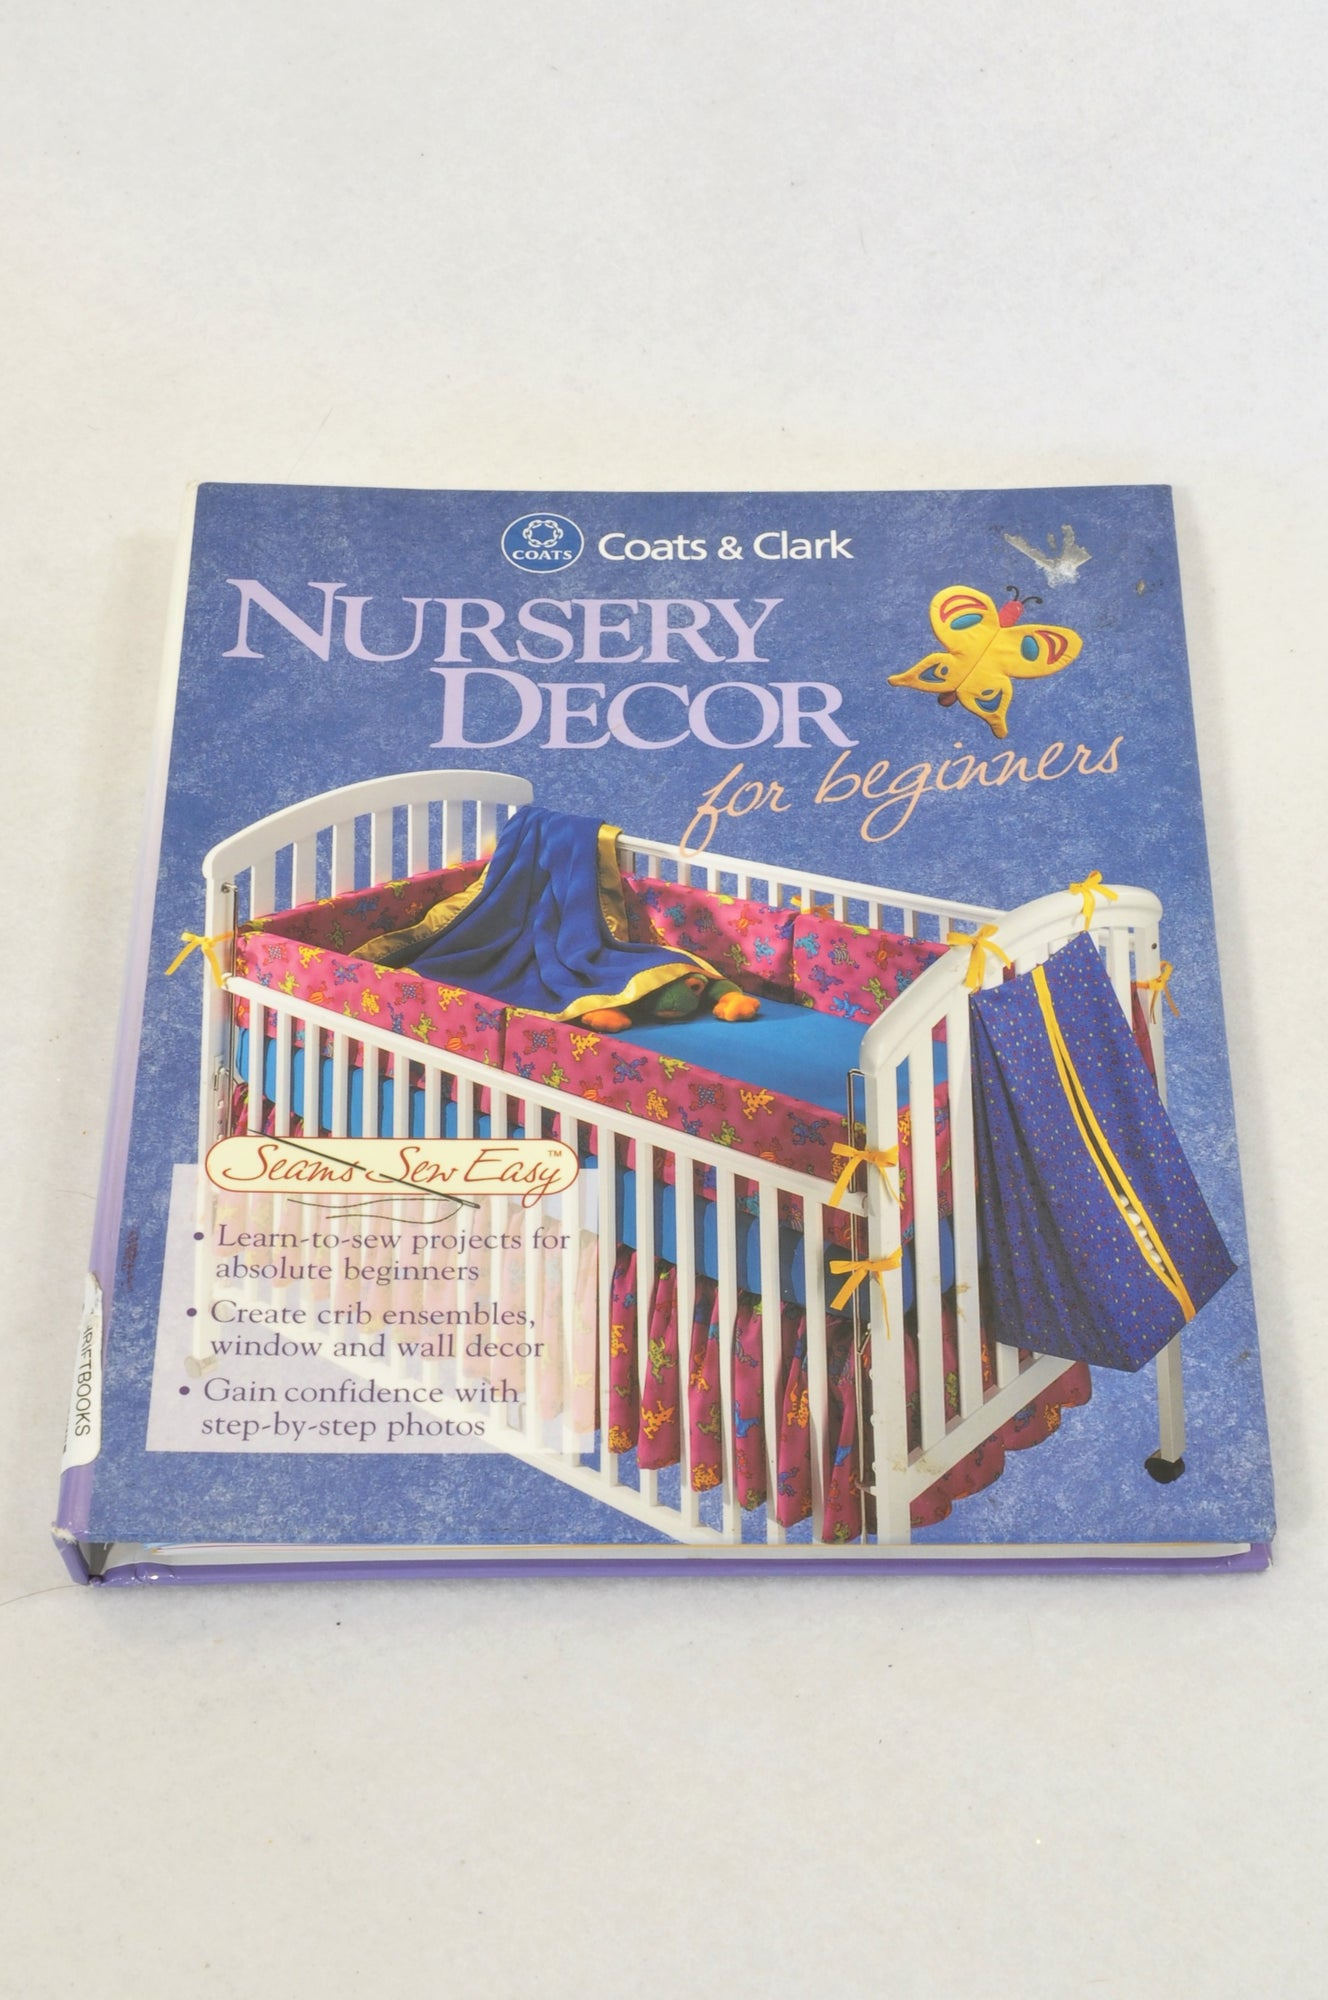 Coats & Clark Nursery Decor For Beginners Parenting Book Unisex All Ages